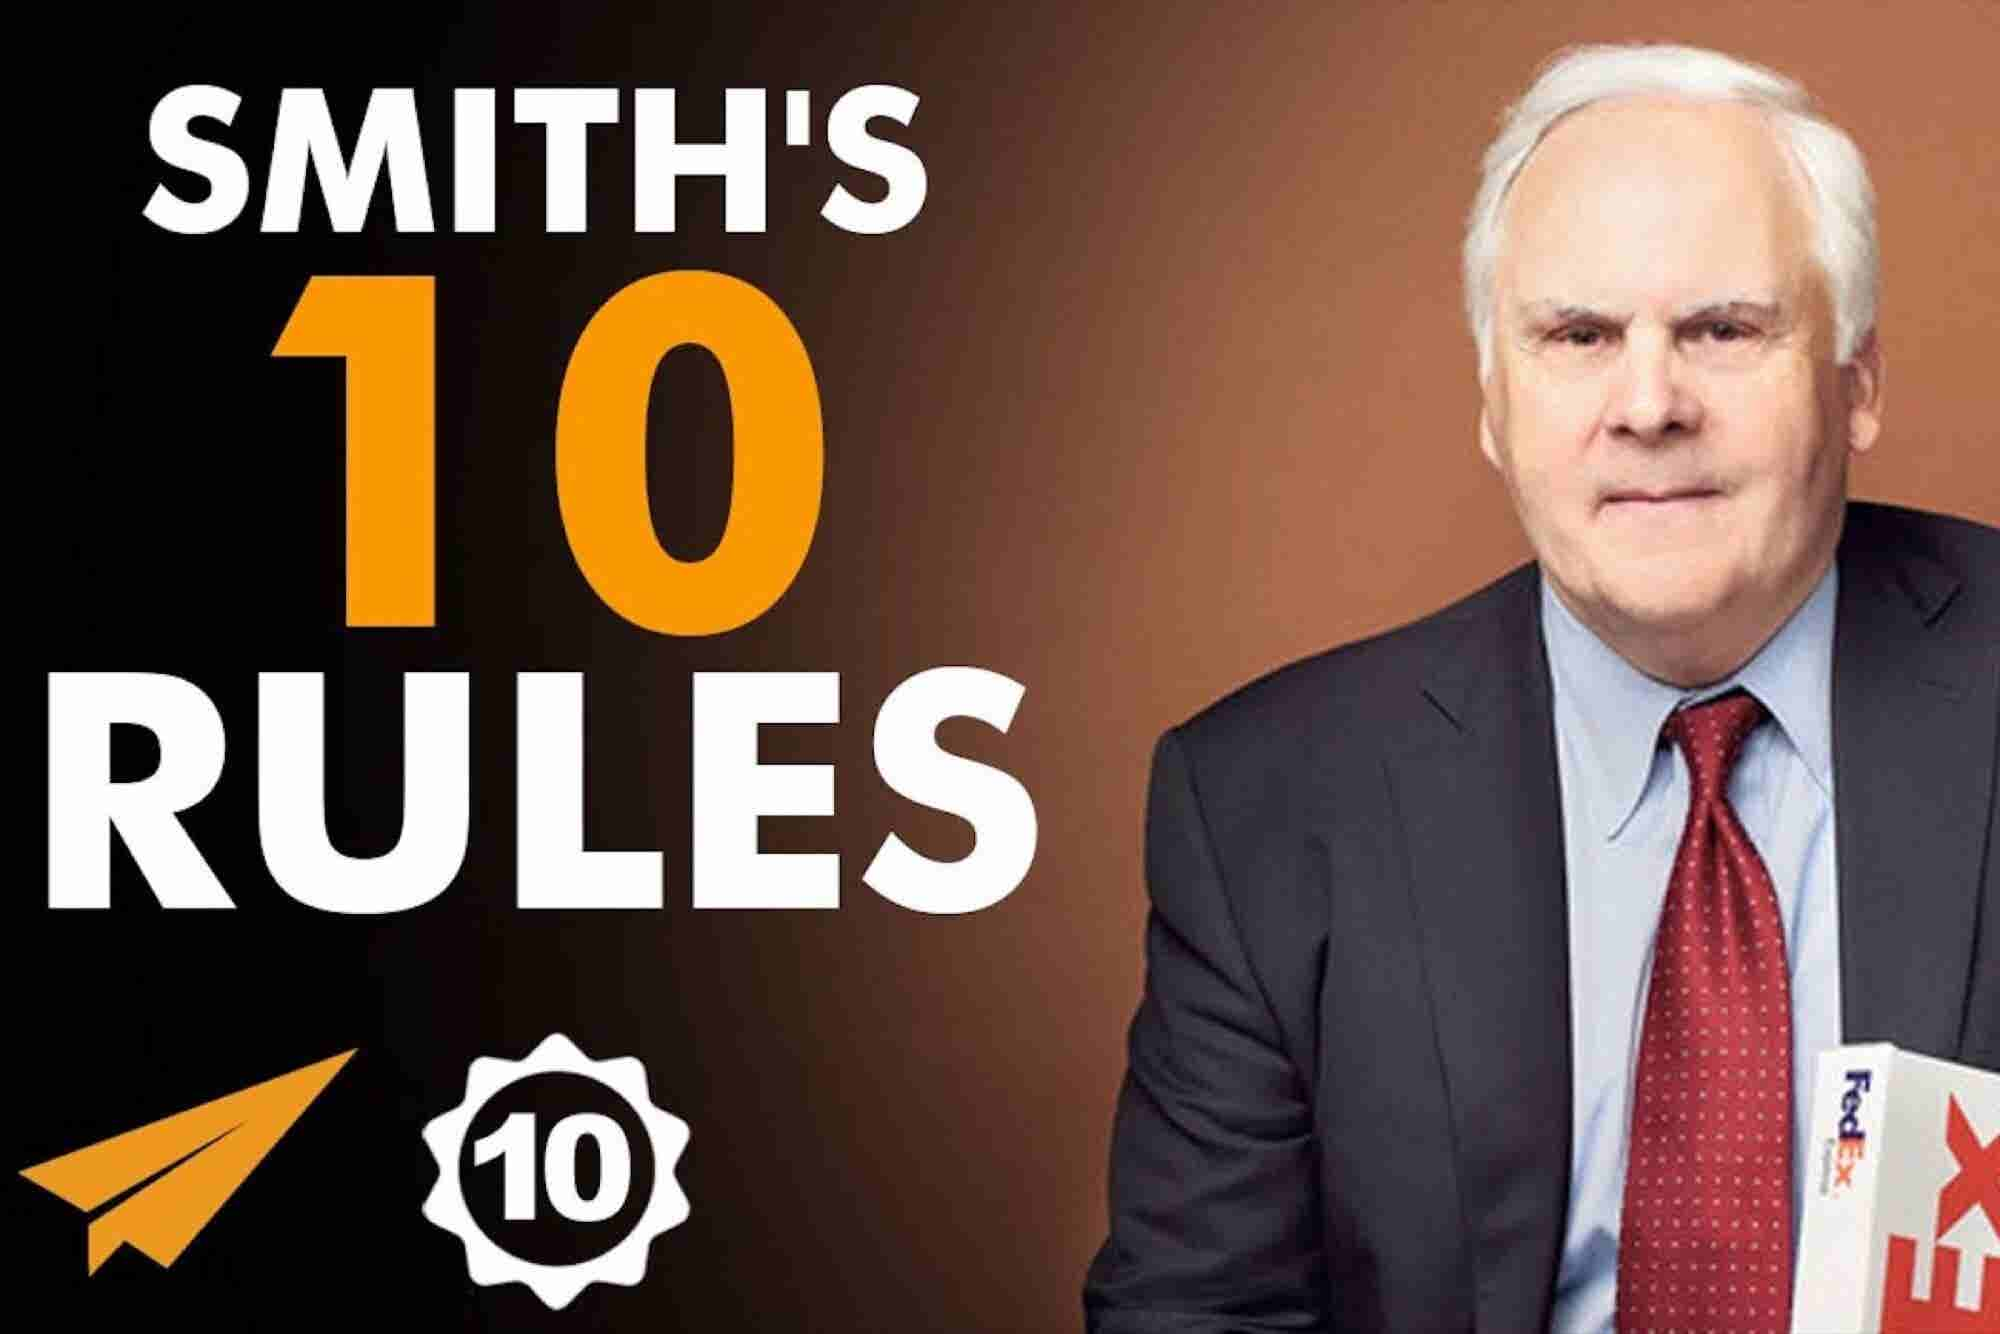 The Founder of FedEx Shares His Top 10 Rules for Success